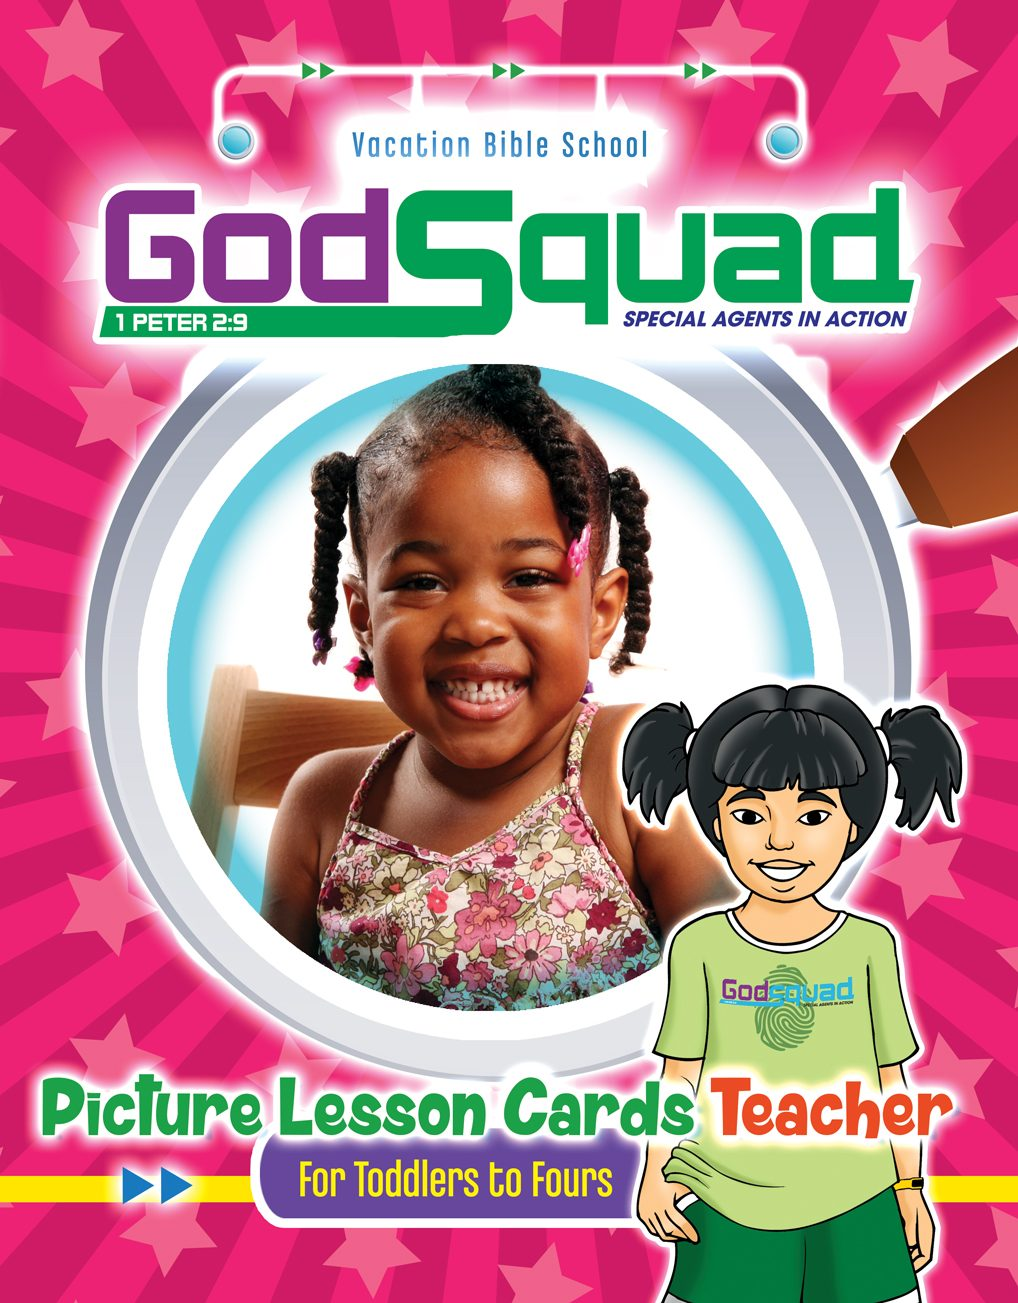 VBS GodSquad Picture Lesson Cards Teacher 2018